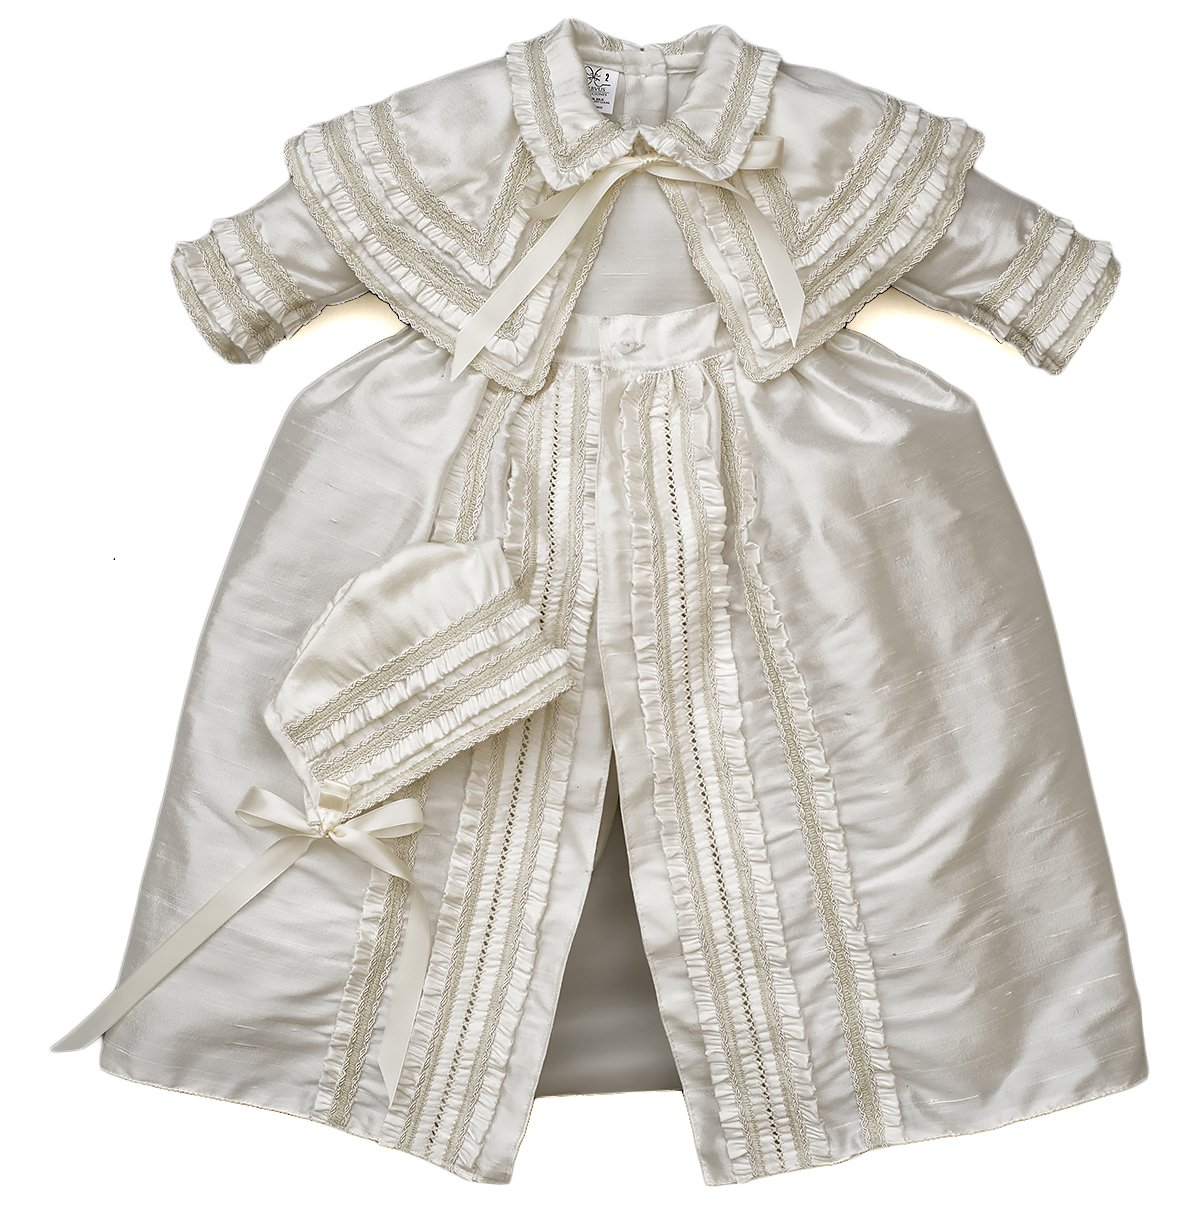 Heirloom Baby Boy's Christening Baptism Gown, Hand Made Ivory (Burbvus Ropones) by Burbvus (Image #1)